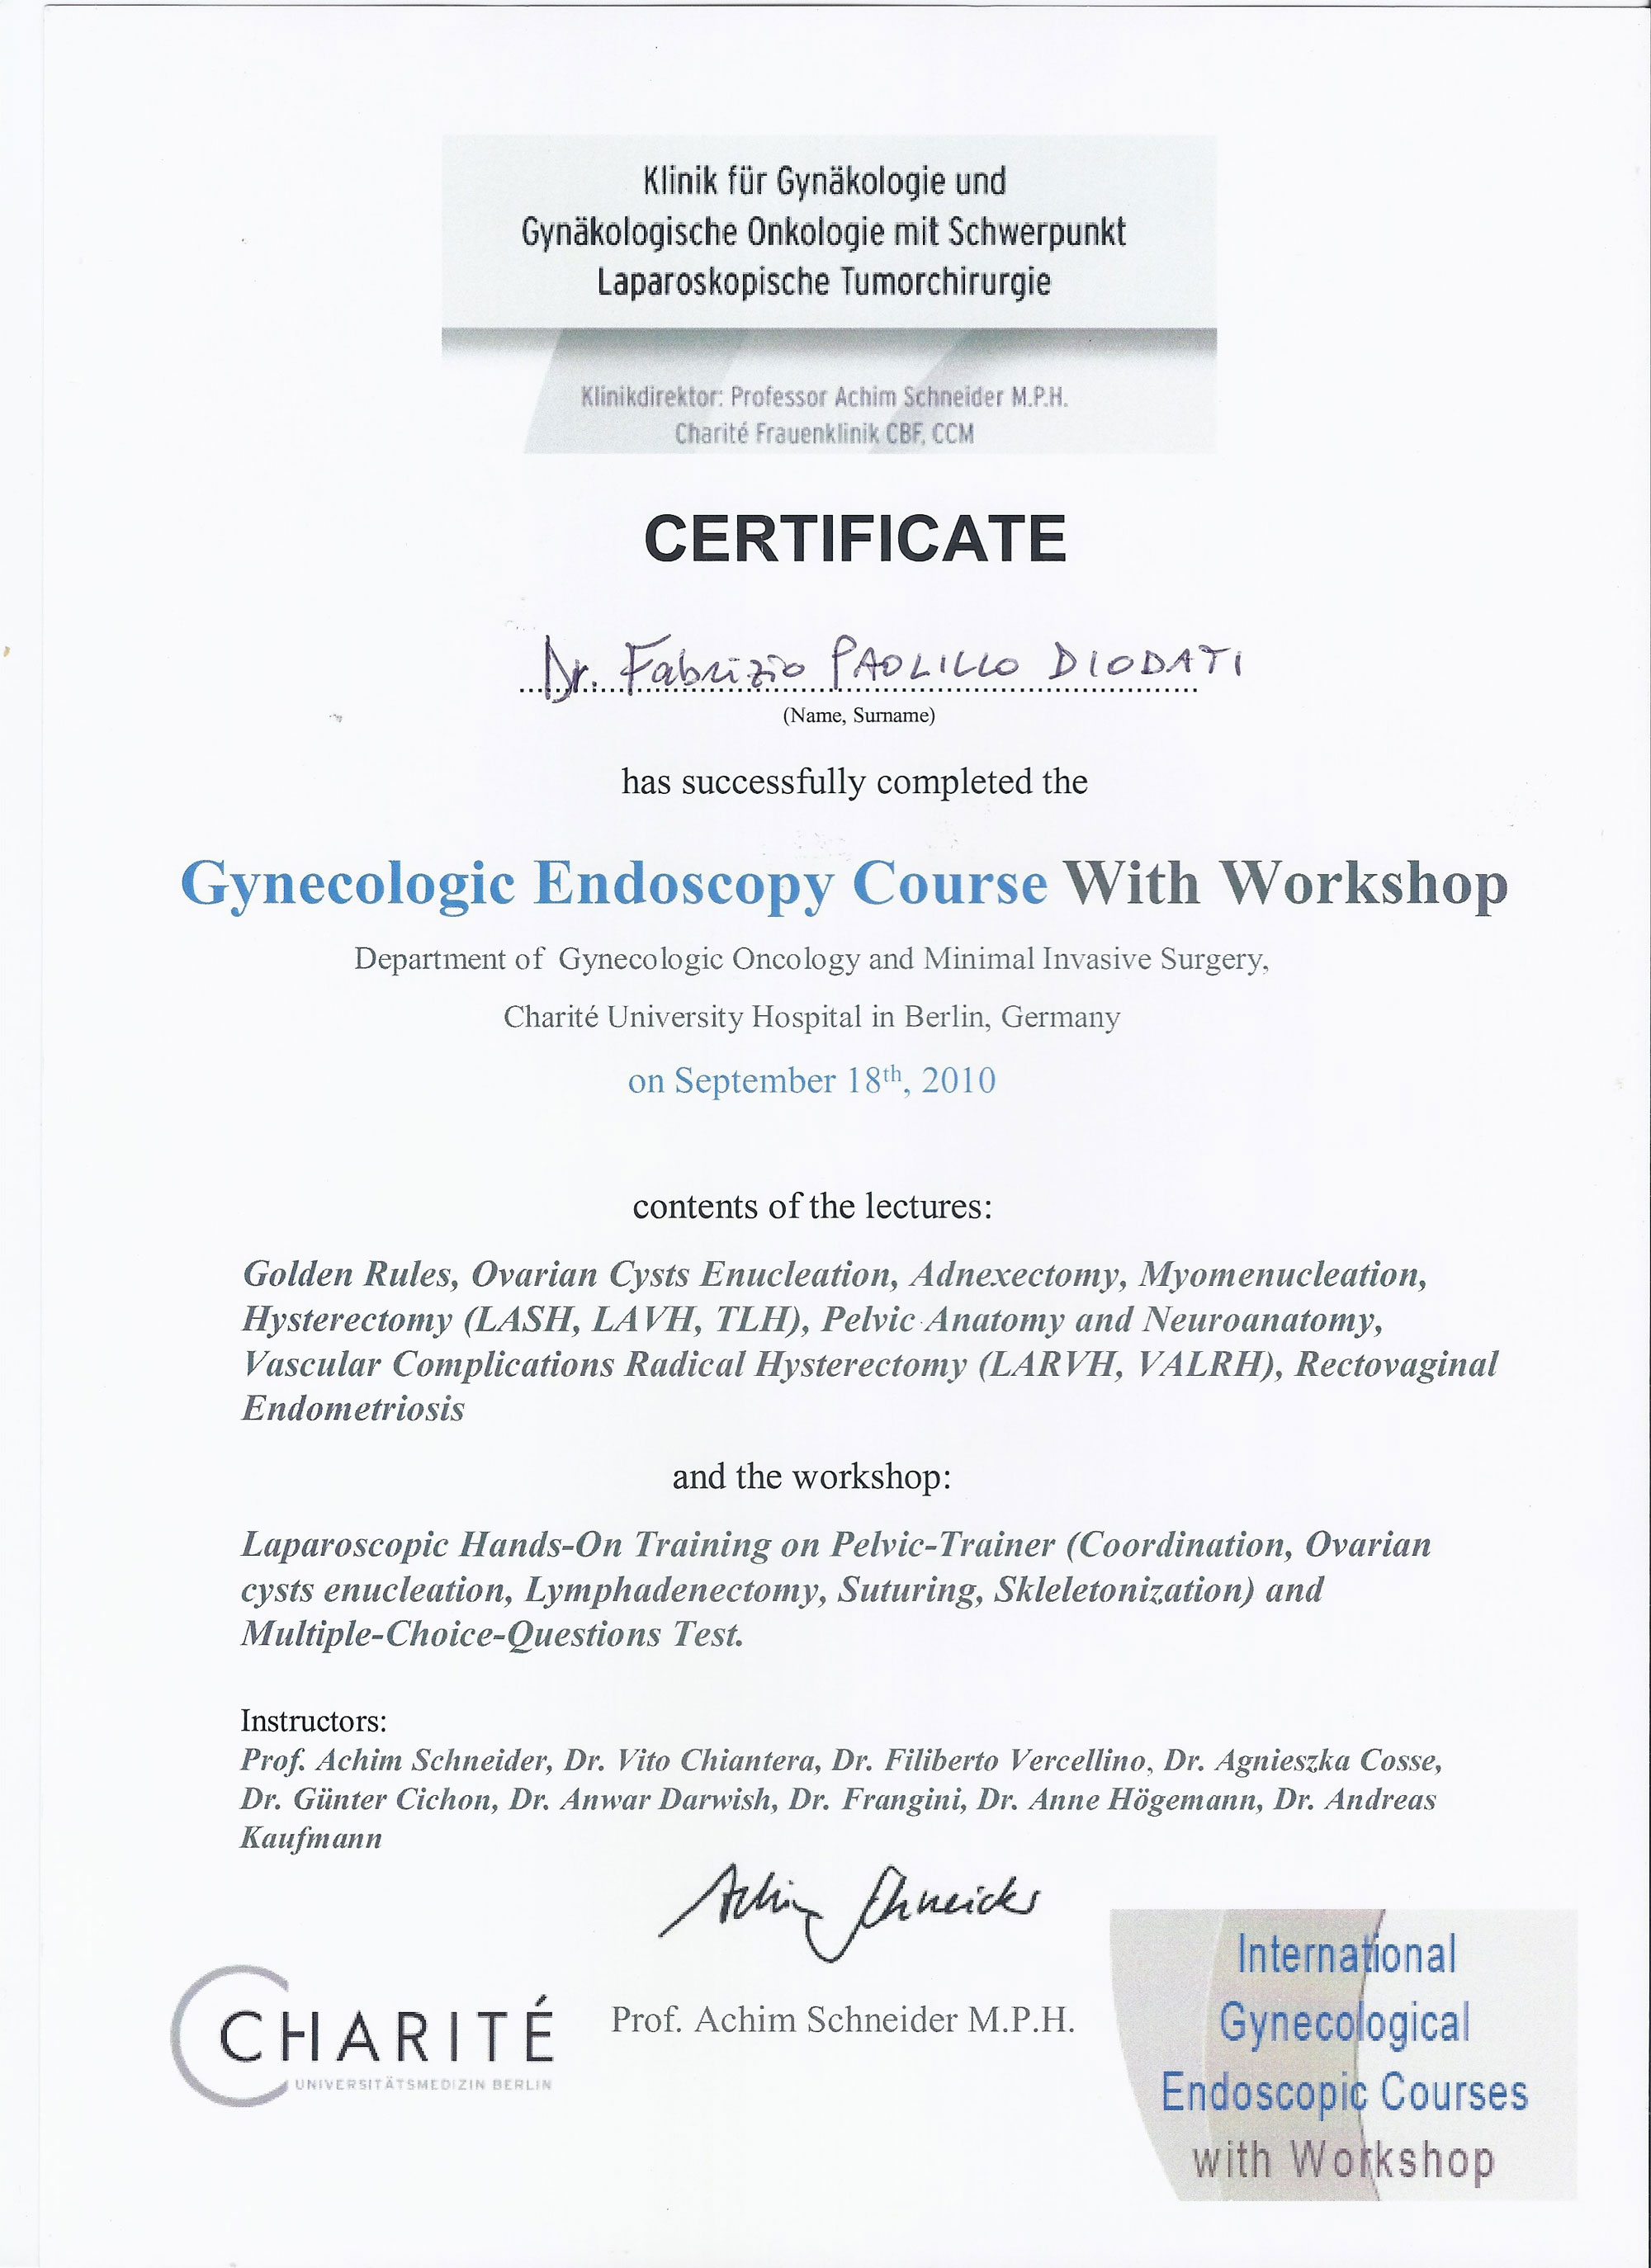 Gynecologic Endoscopy Course